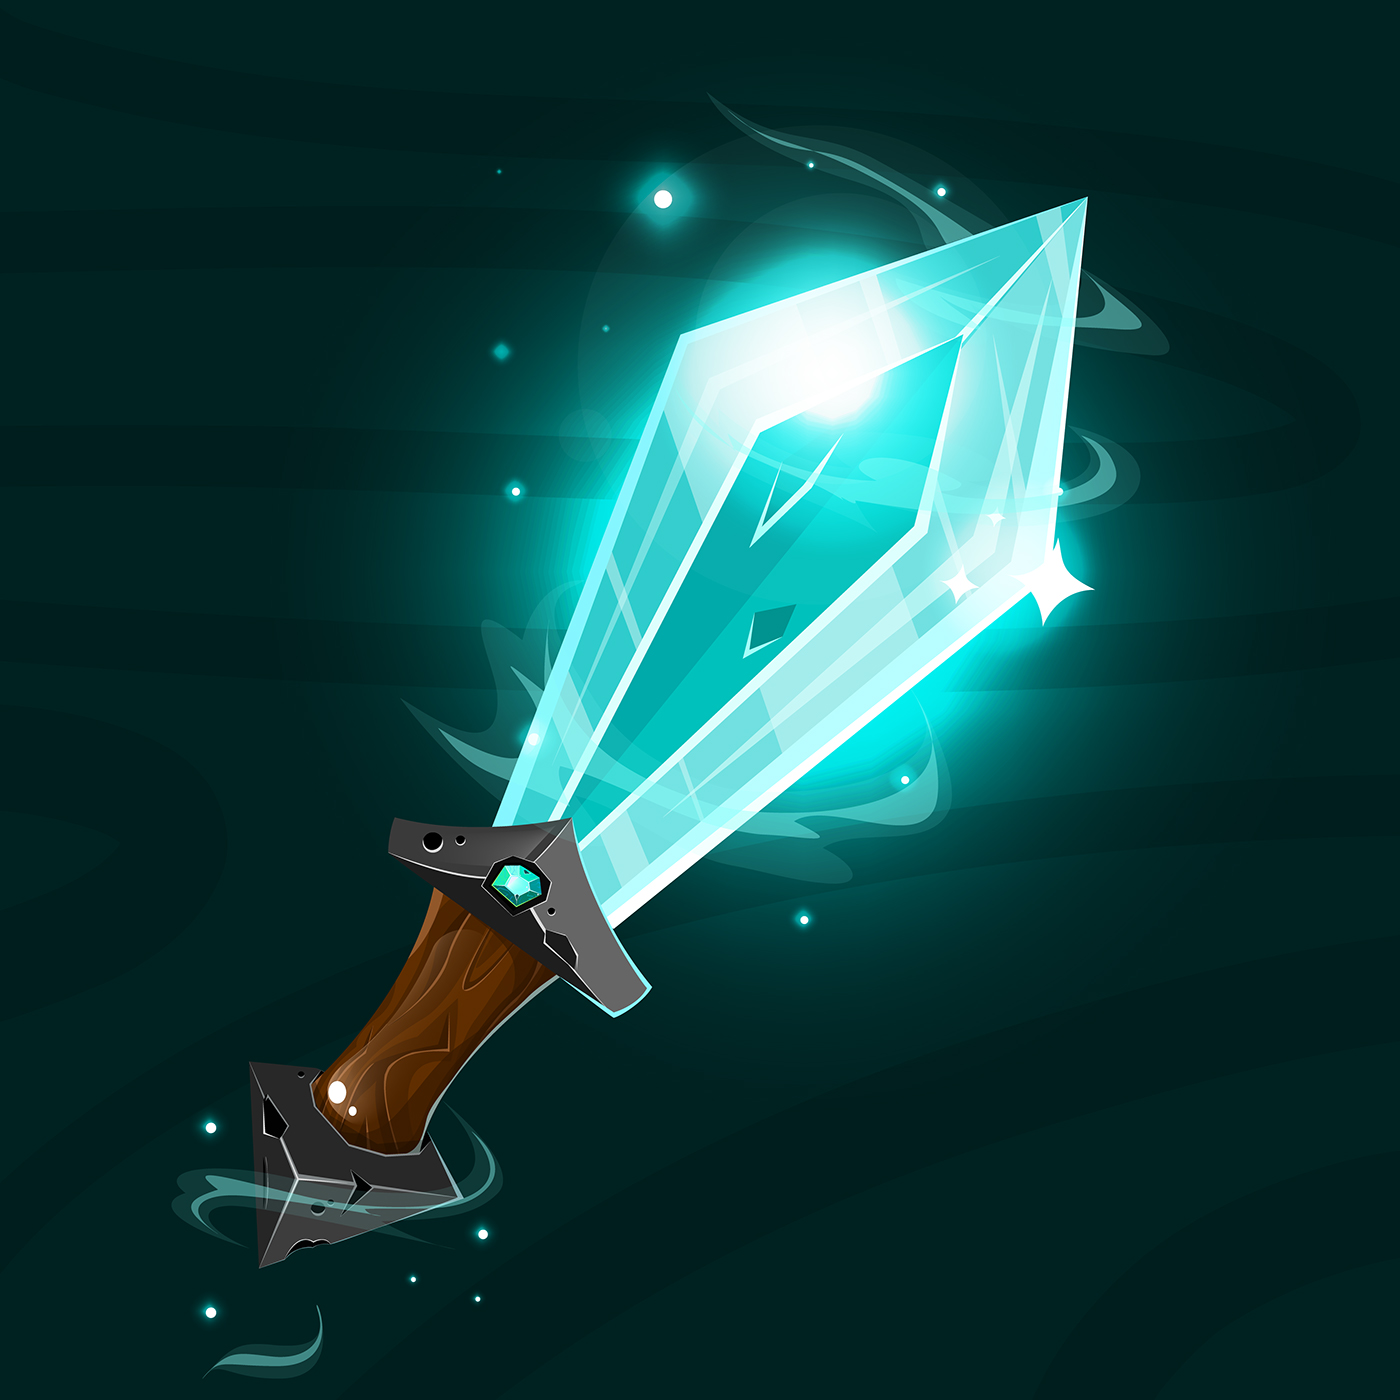 Game Sword Design